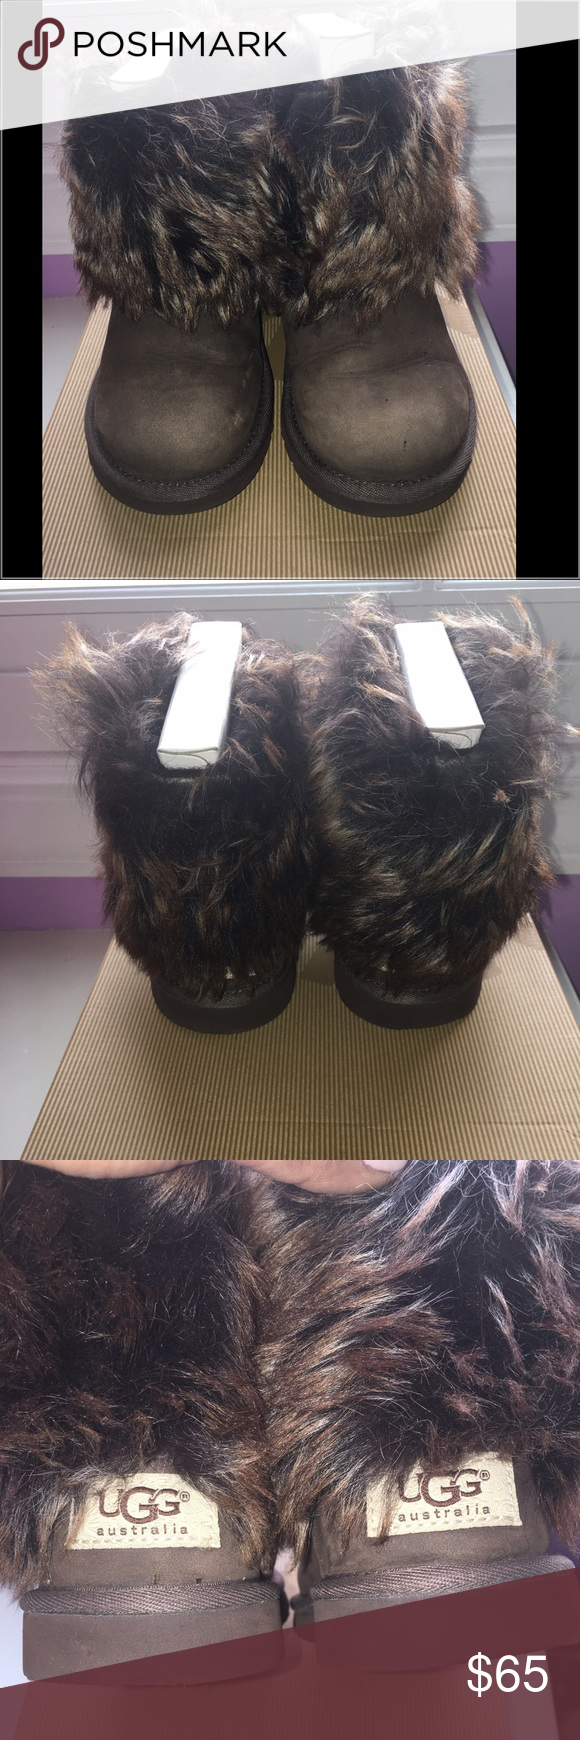 "Ugg Little Girl Fur Boots Great condition Little girl ""K Ellee"" fur ugg boots. Size 13 UGG Shoes Boots"